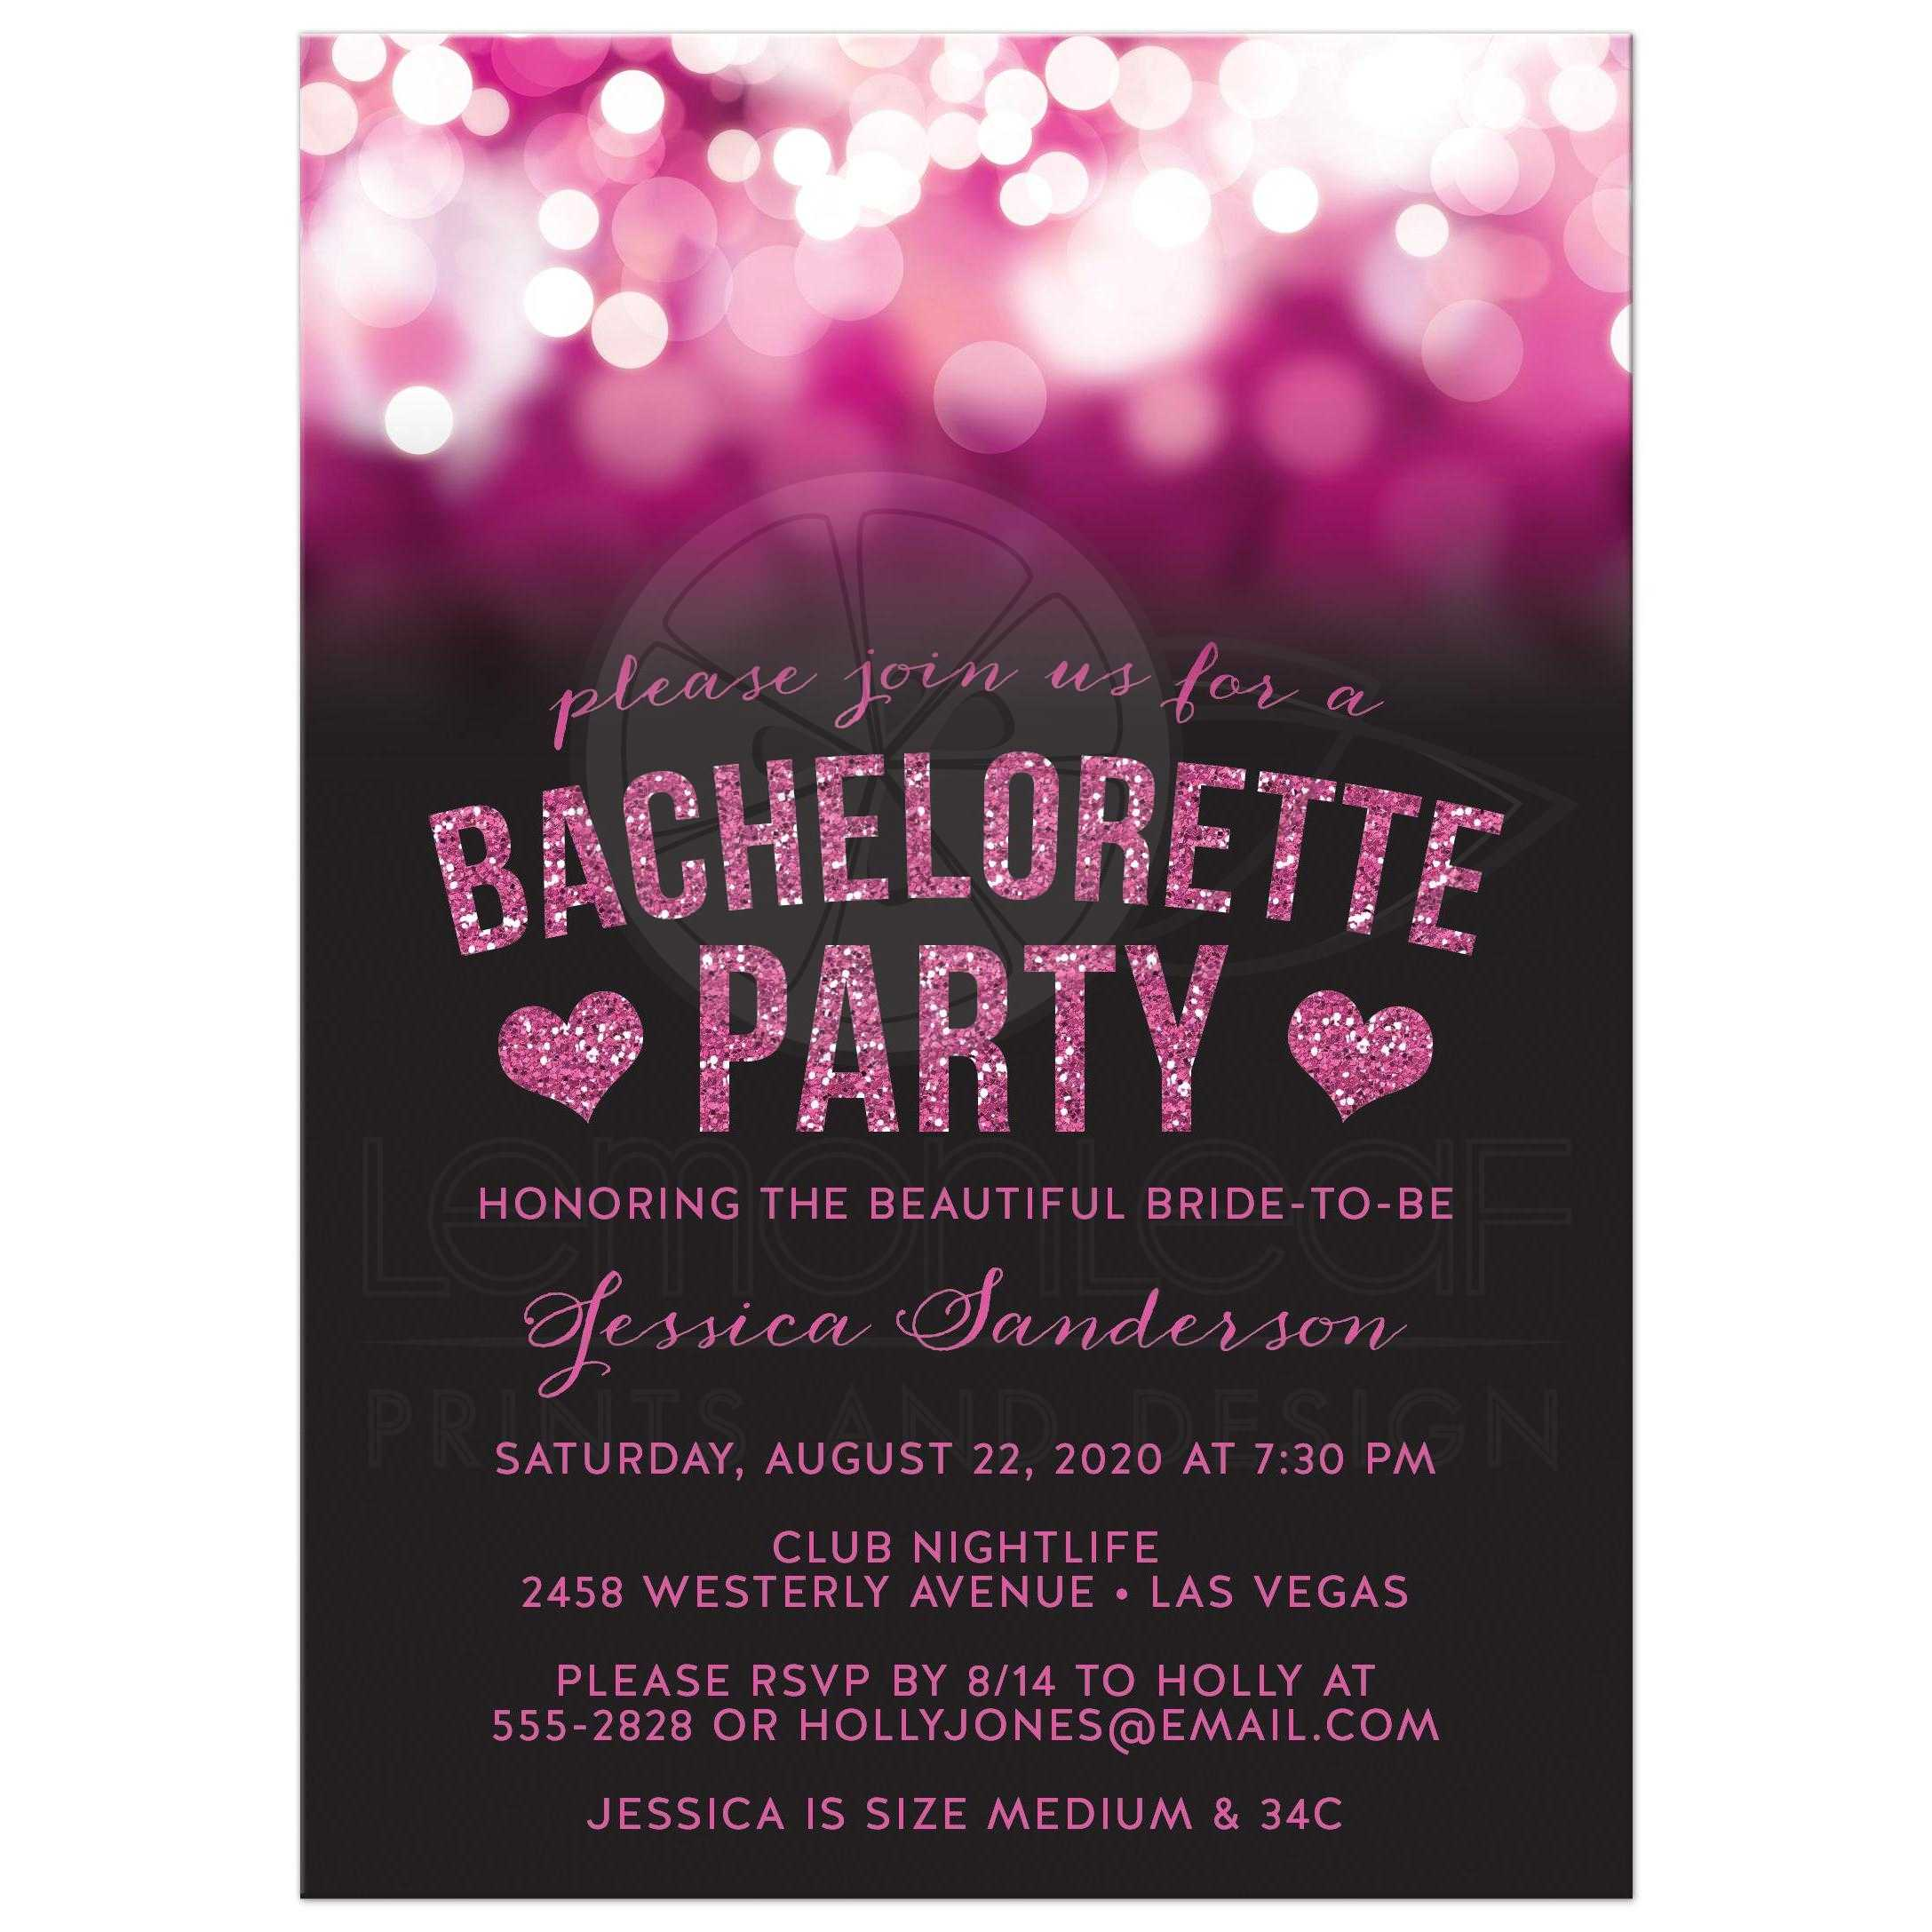 Bachelorette Party Invitations Hot Pink Party Lights Glitter